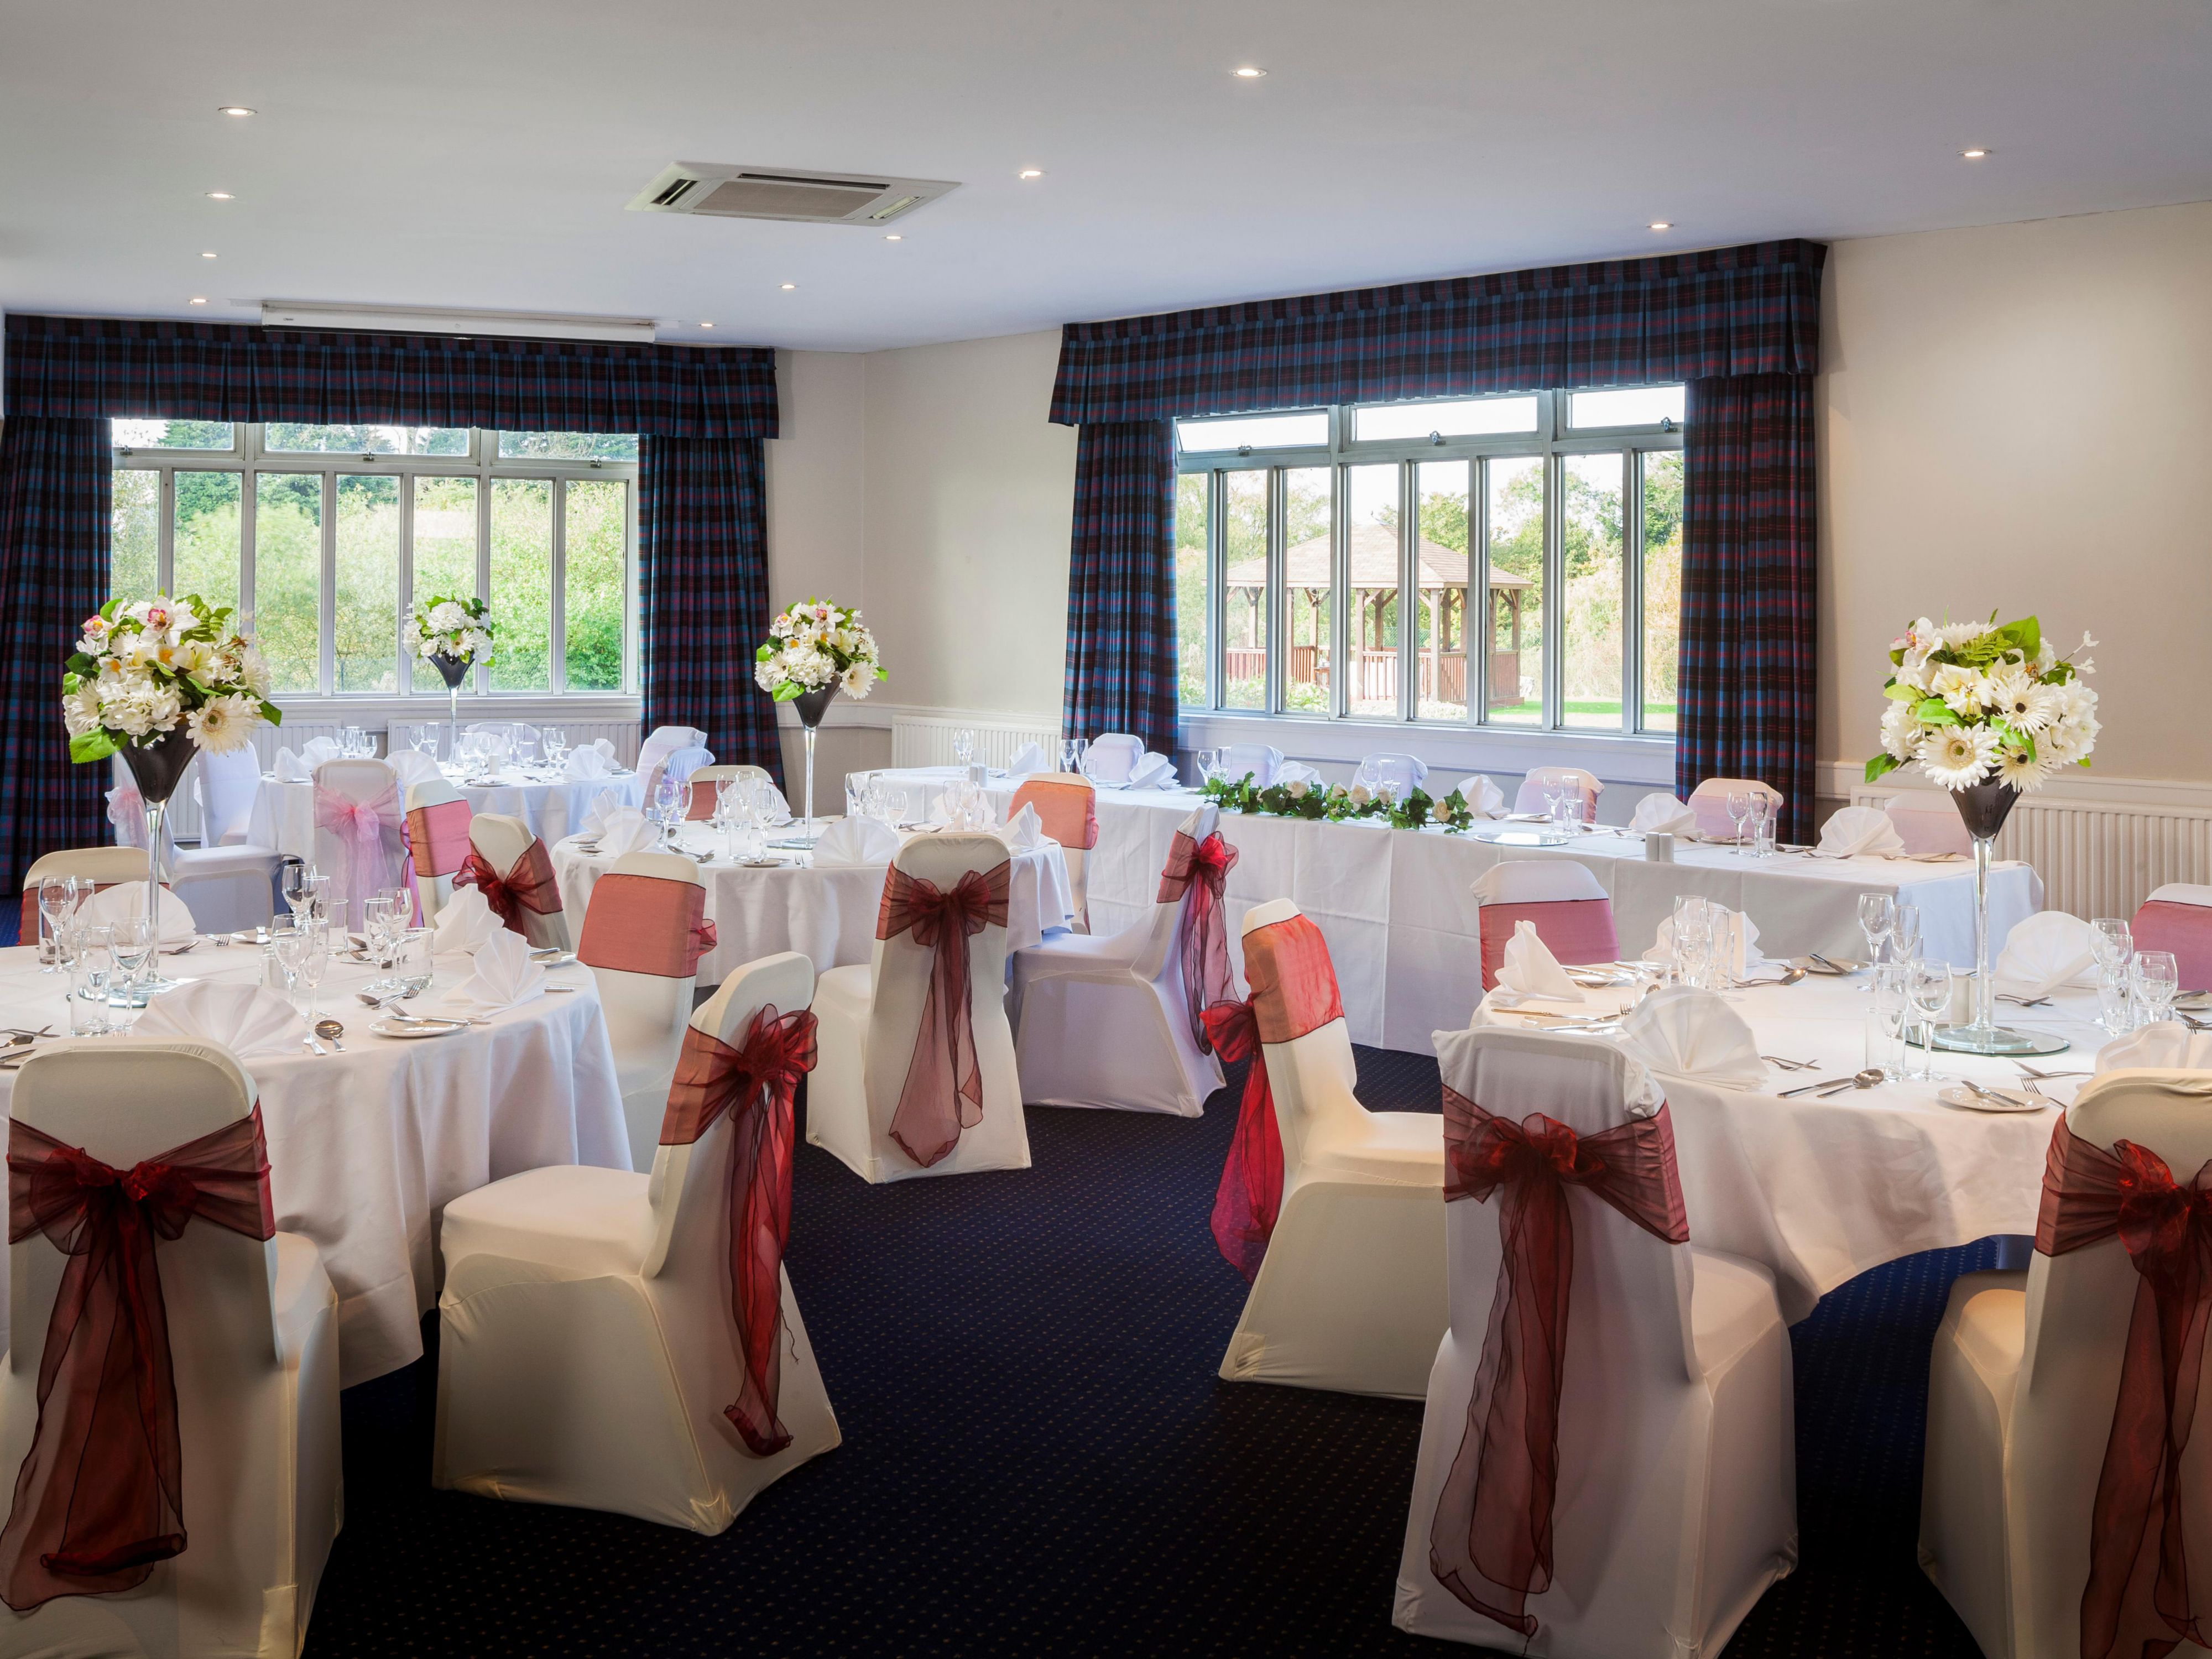 We can cater for small or large functions